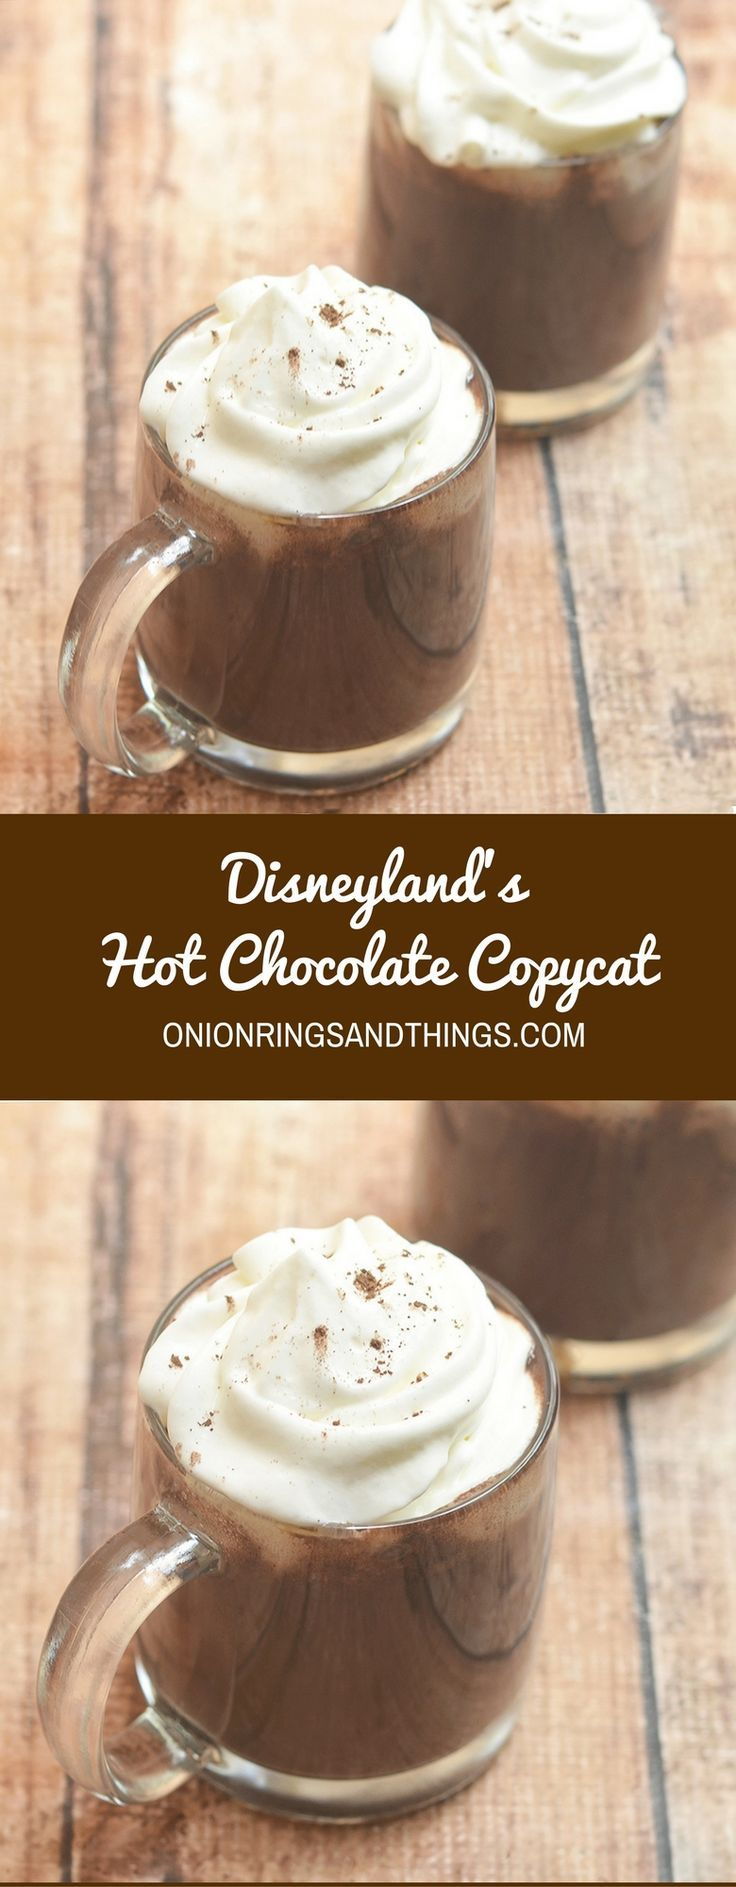 Disneyland's hot chocolate copycat is creamy and chocolatey at every sip! Rich and indulgent, it's the perfect treat for cold winter days!